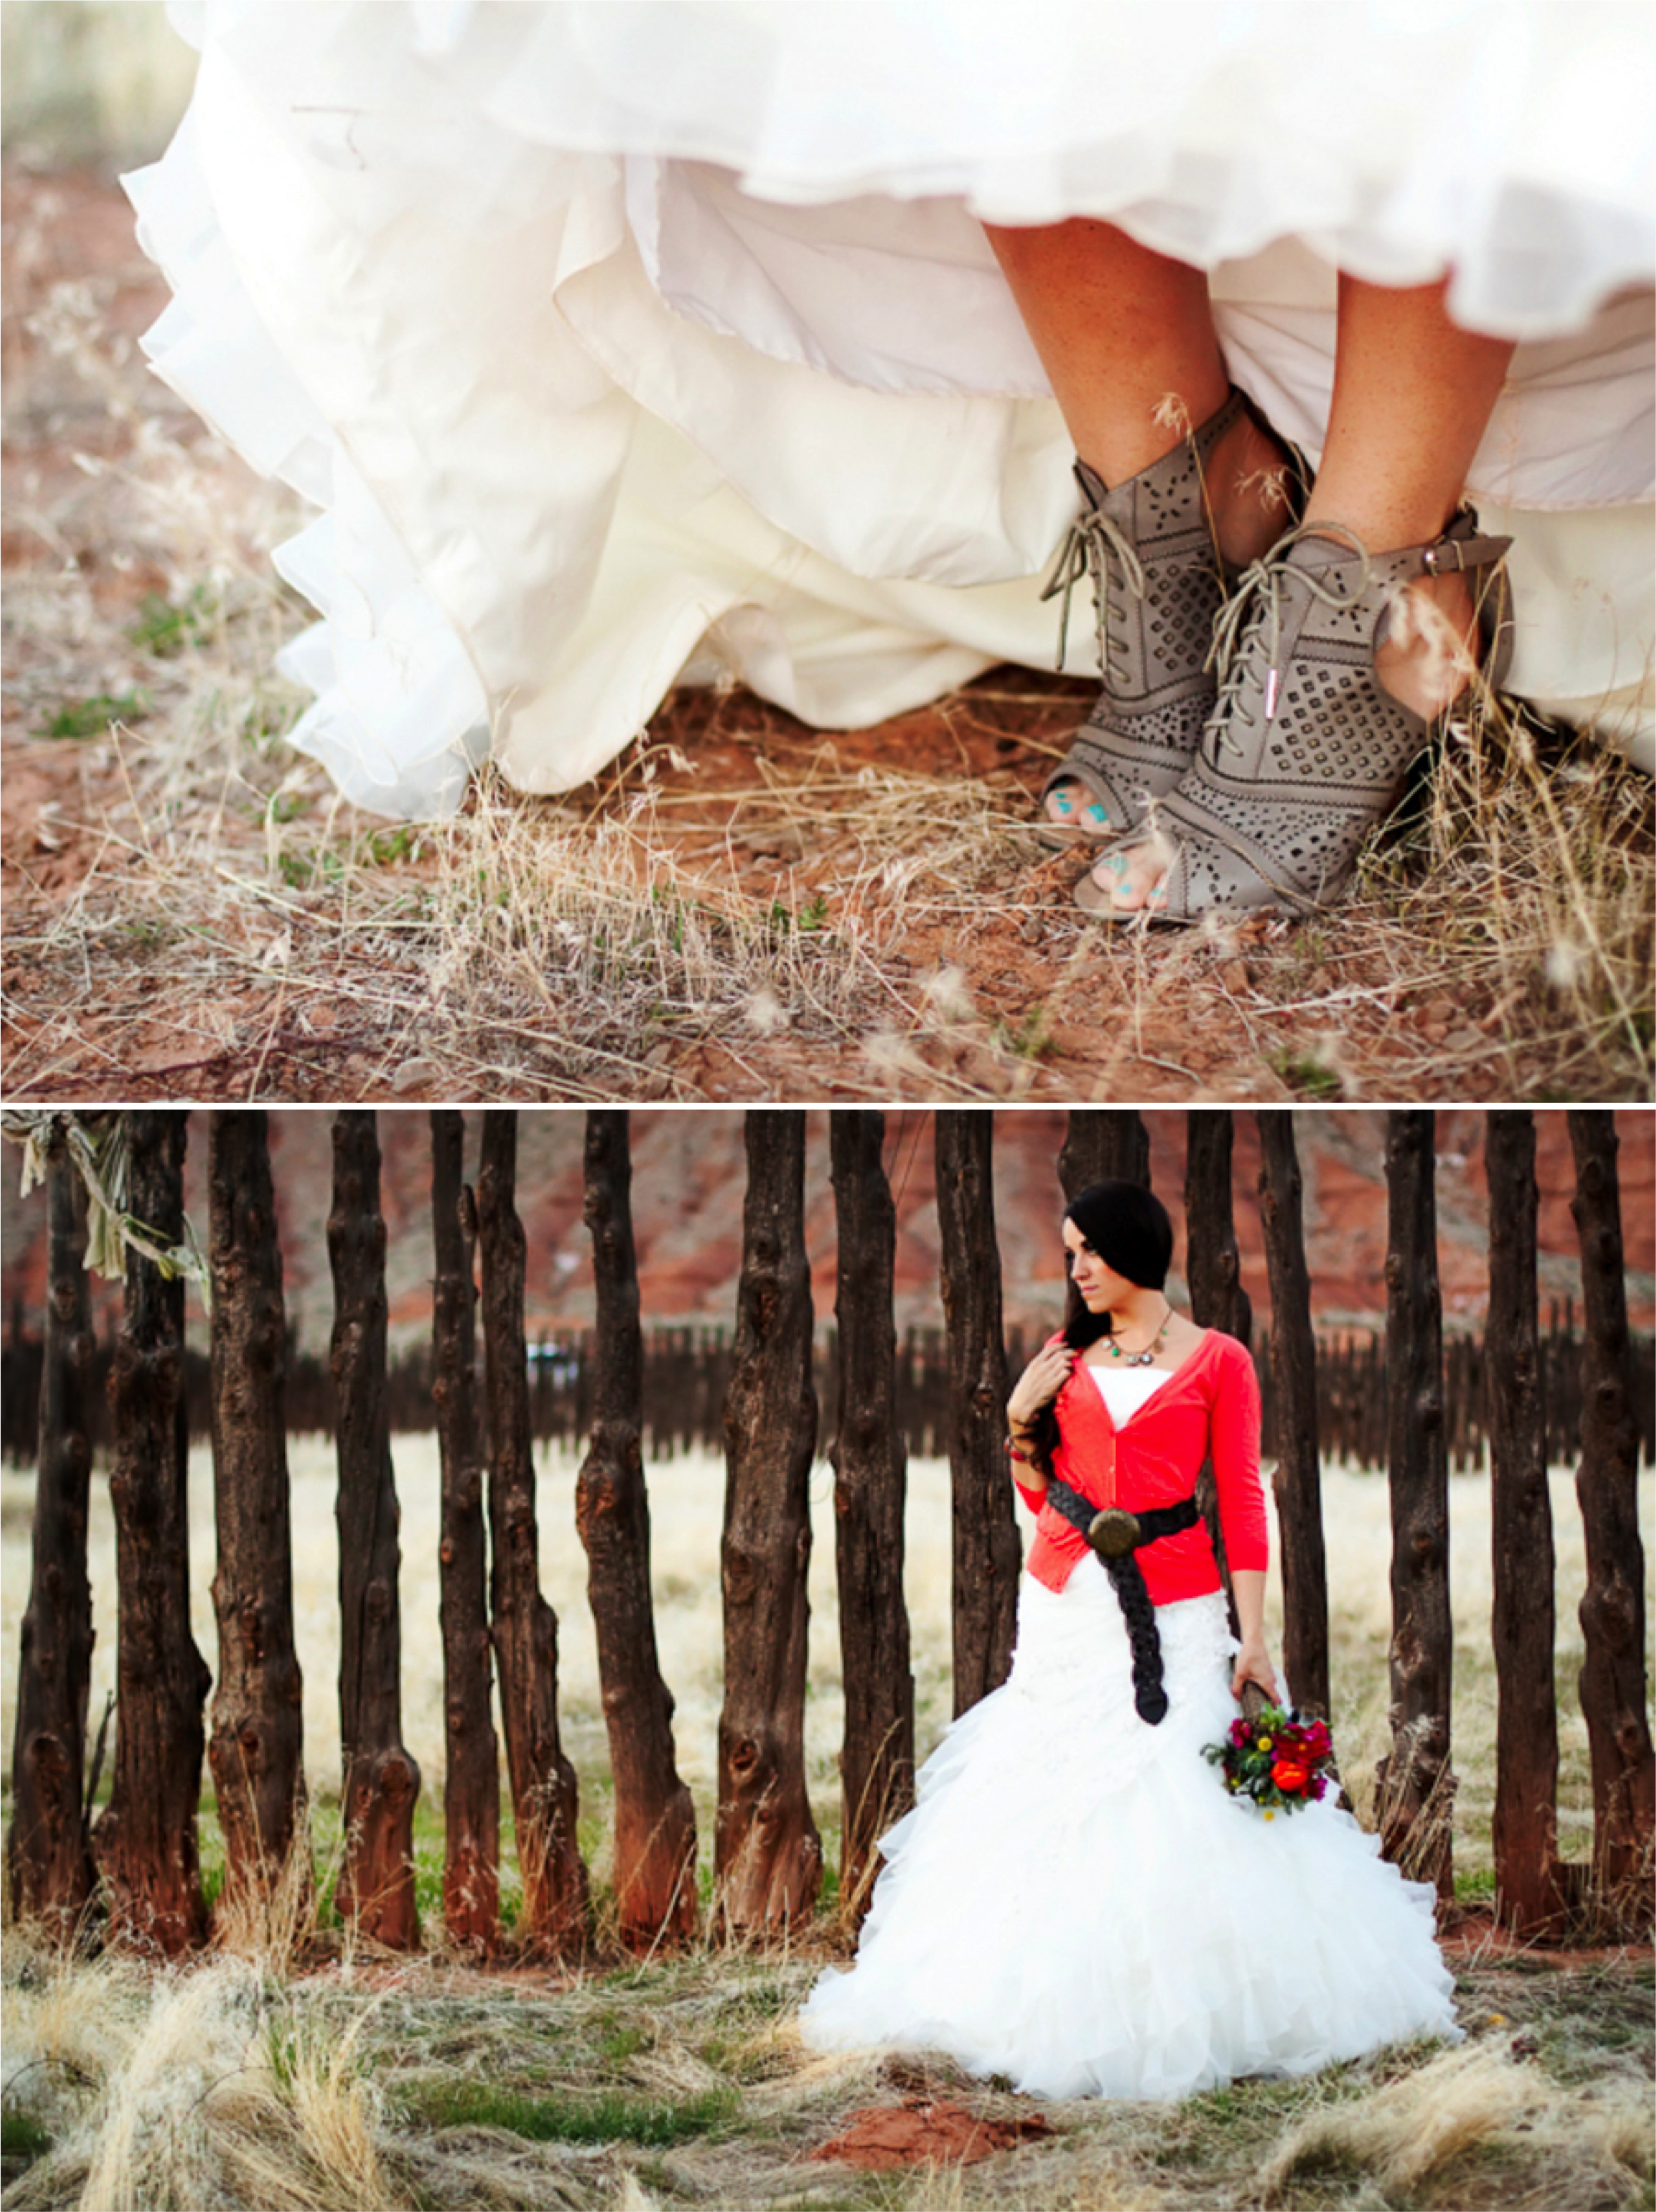 Boho Chic & Natural Wedding Inspiration via TheELD.com